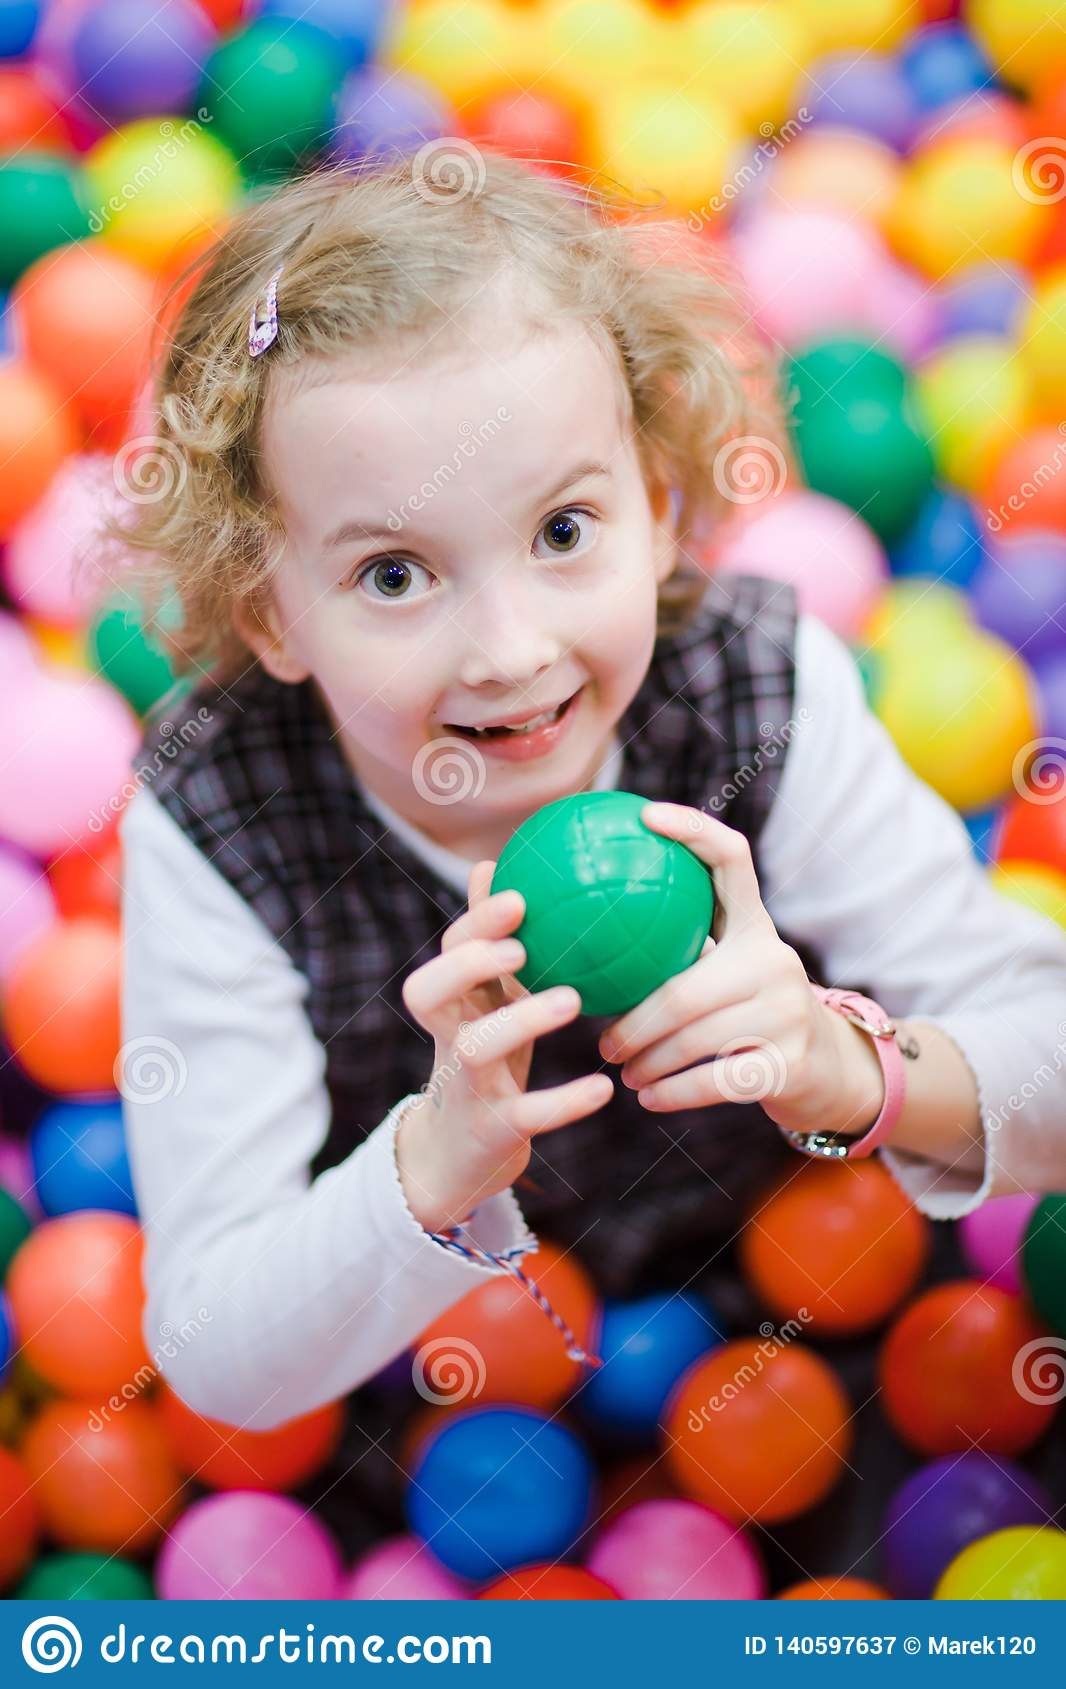 Little smiling girl sitting among a lot of colorful balls - Shallow focus on eyes